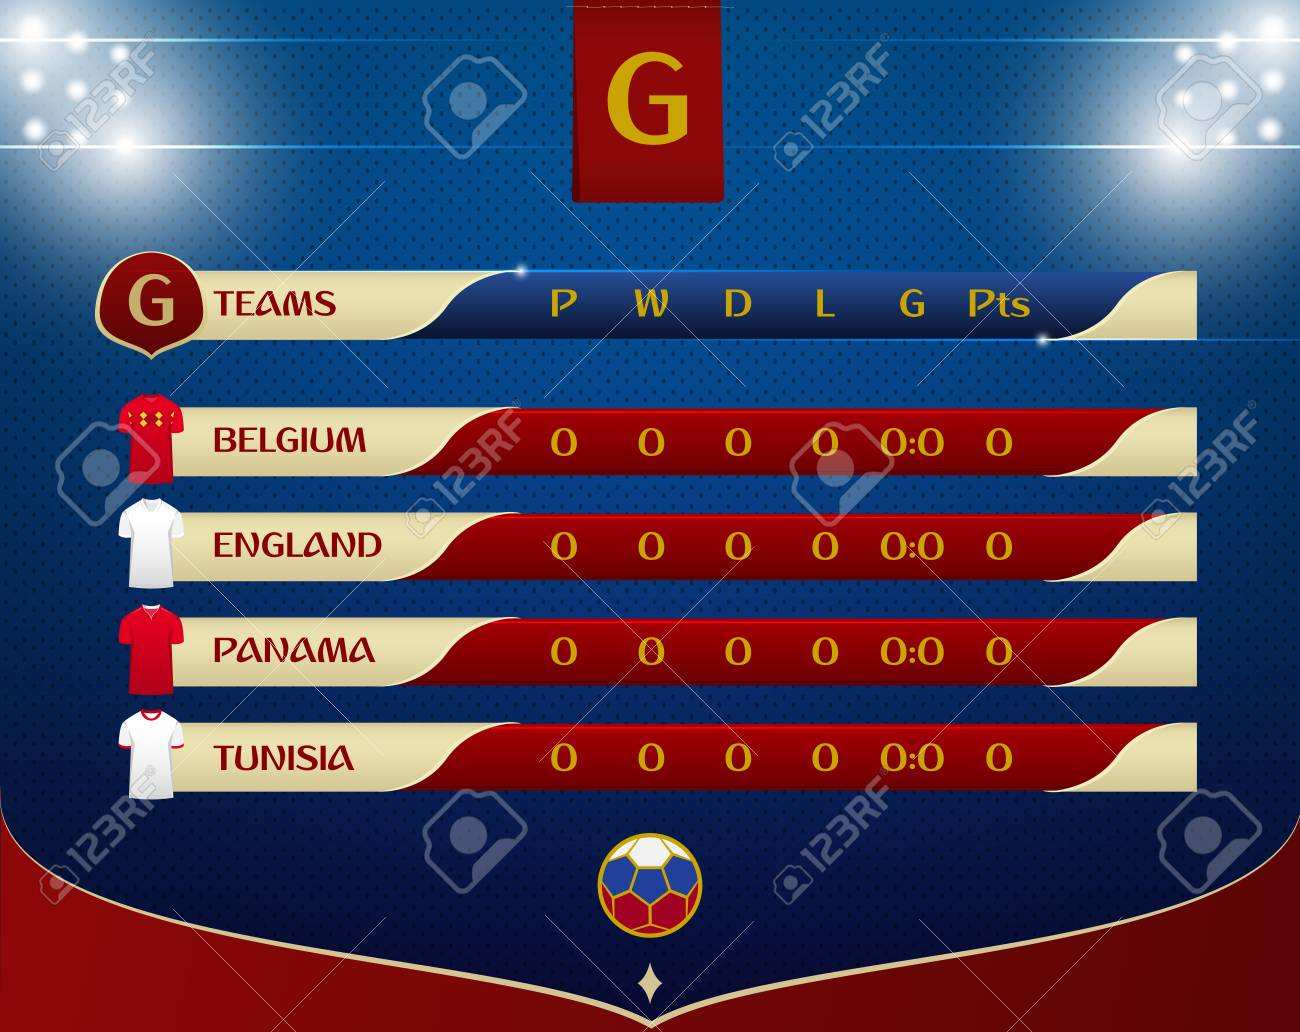 Soccer or football results table template design  Schedule of